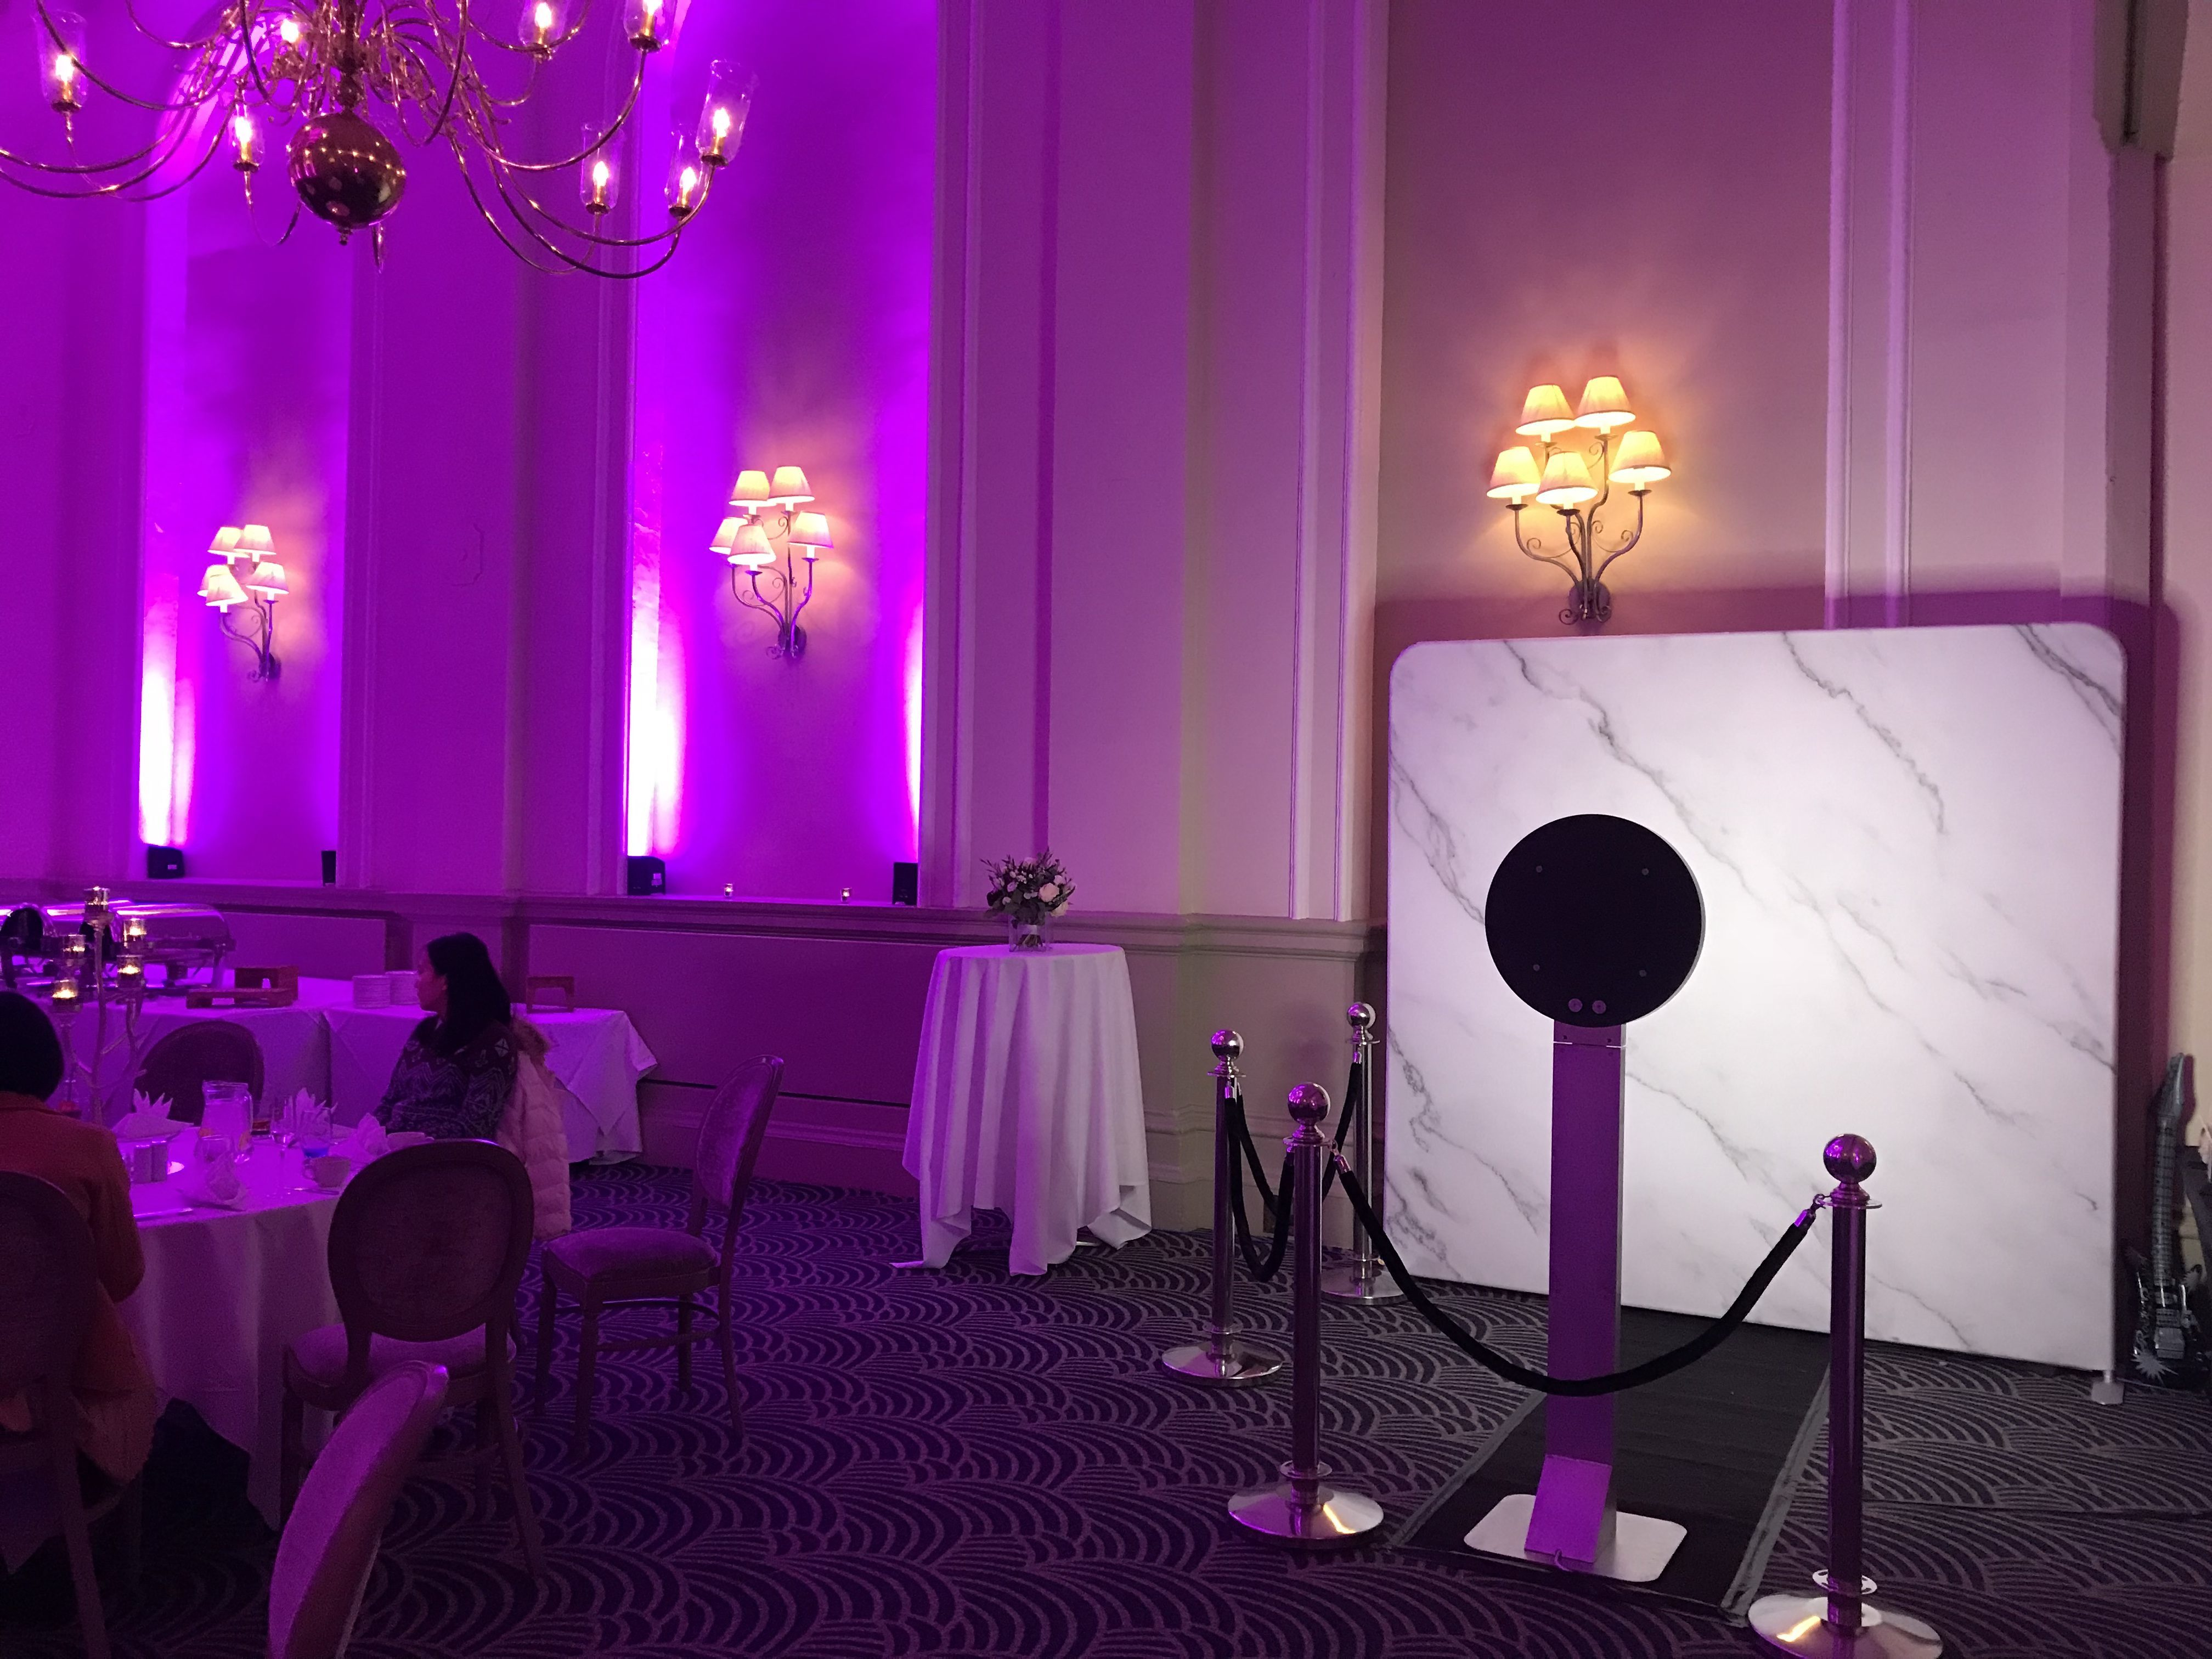 bespoke gif booth hire | Boomerang booth hire in Brighton